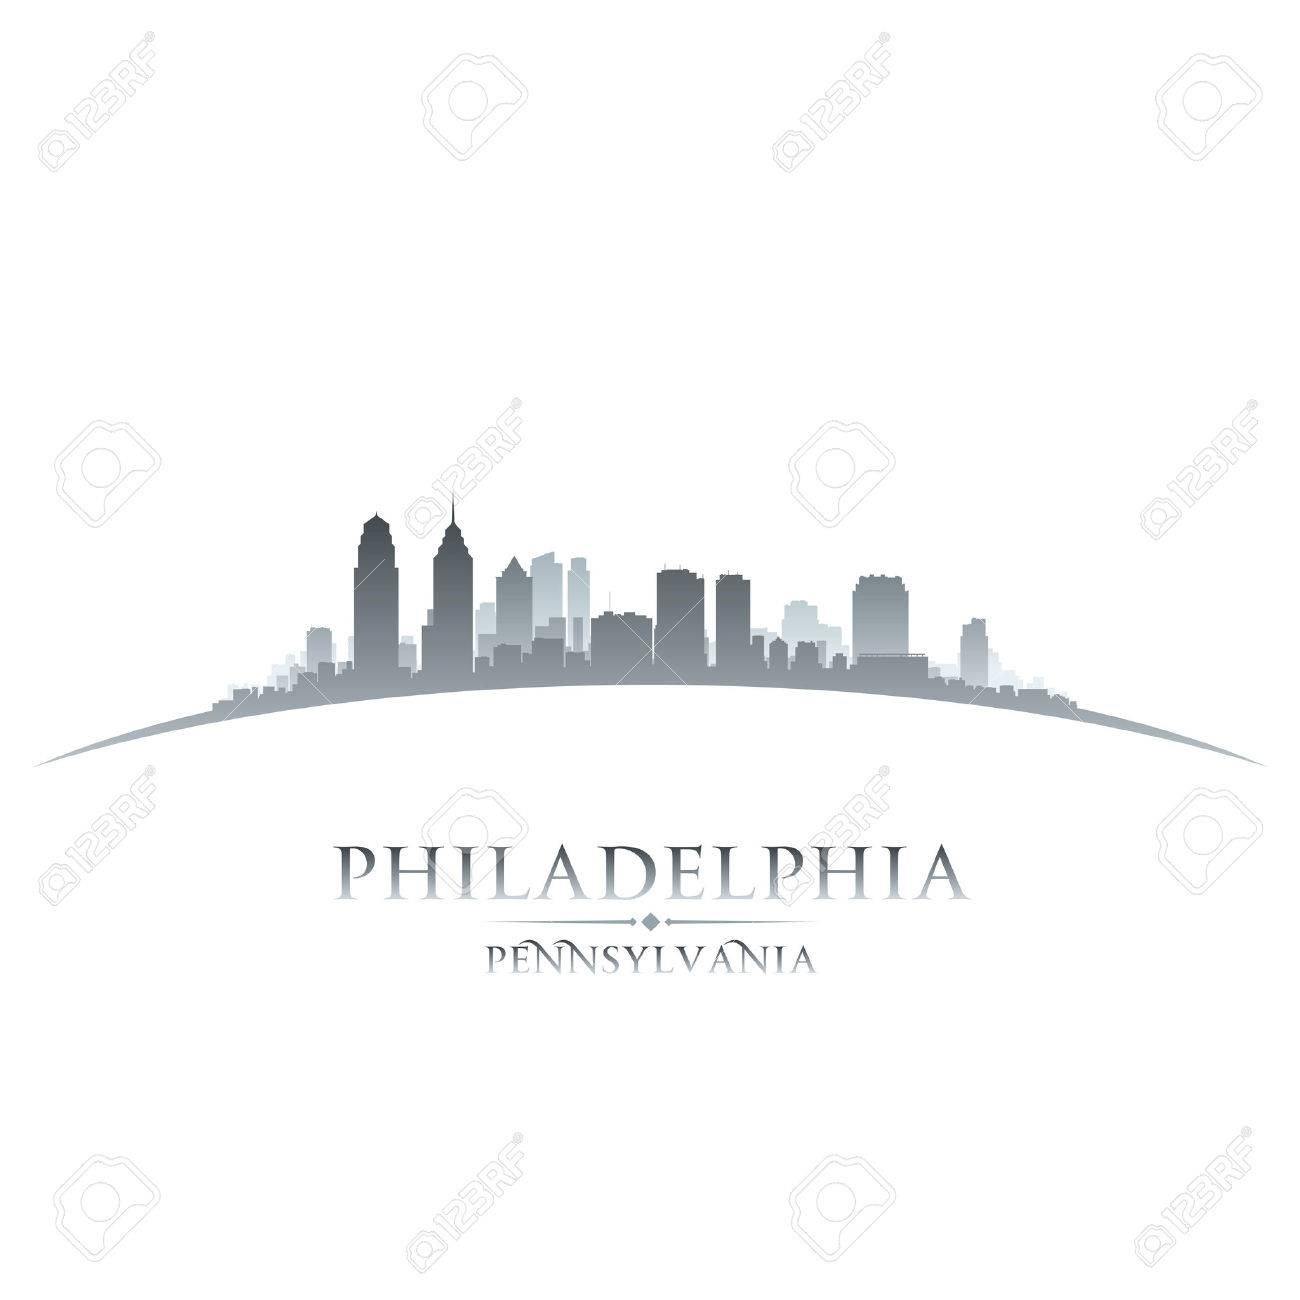 Philadelphia Pennsylvania city skyline silhouette. Vector illustration Stock Vector - 24510428